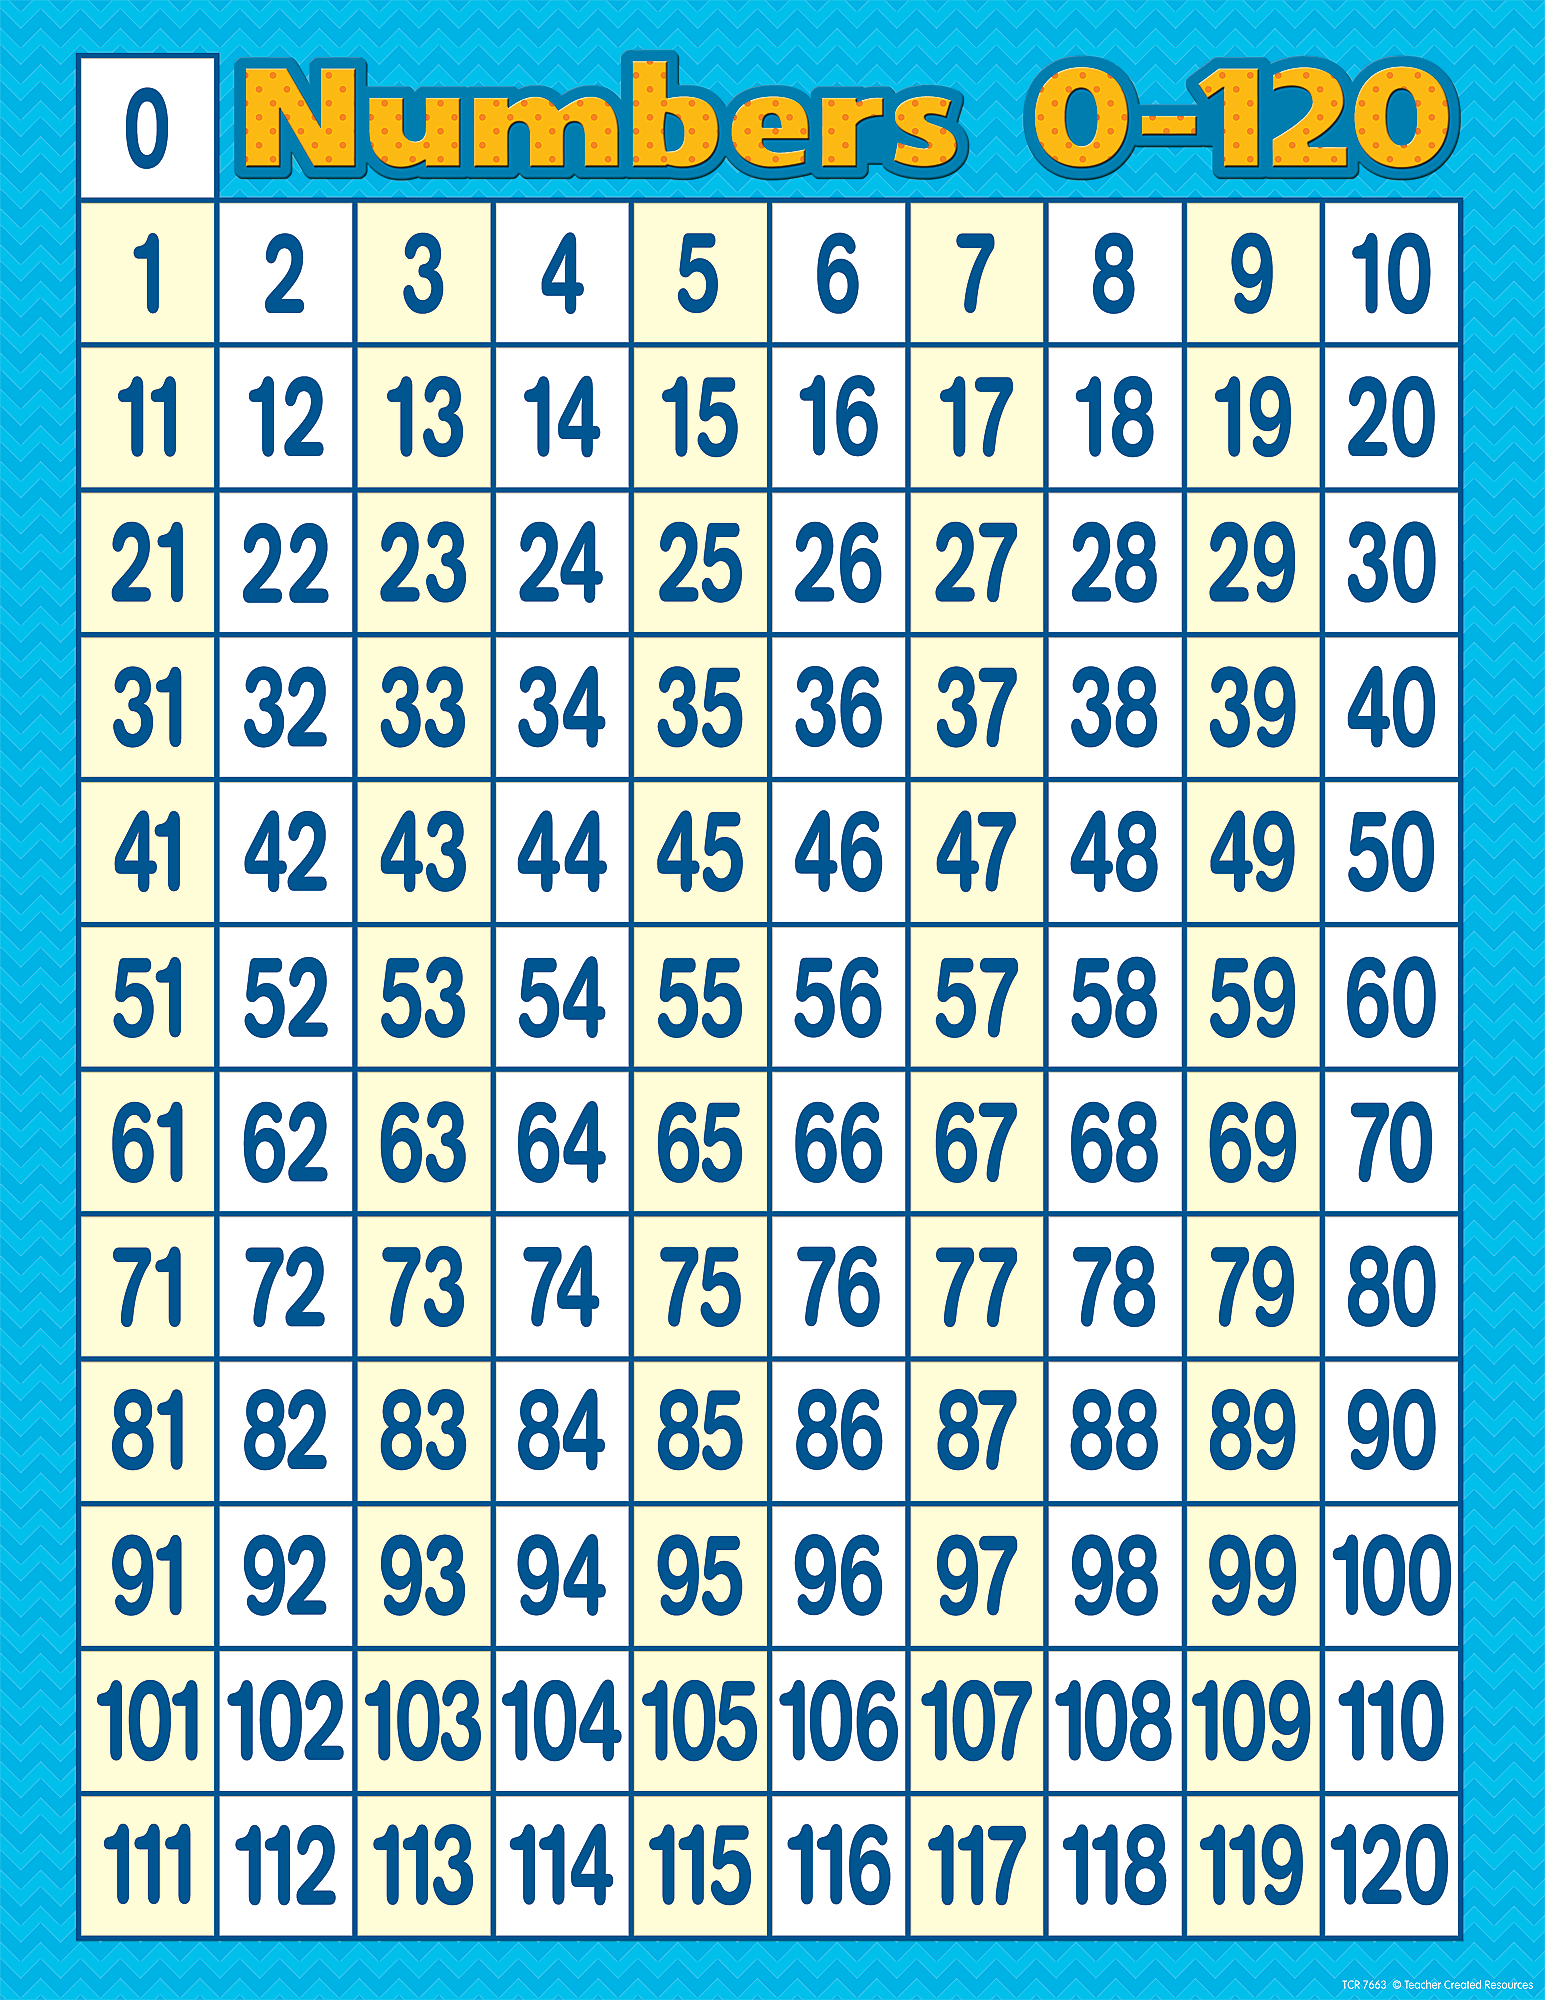 Massif image with printable number chart